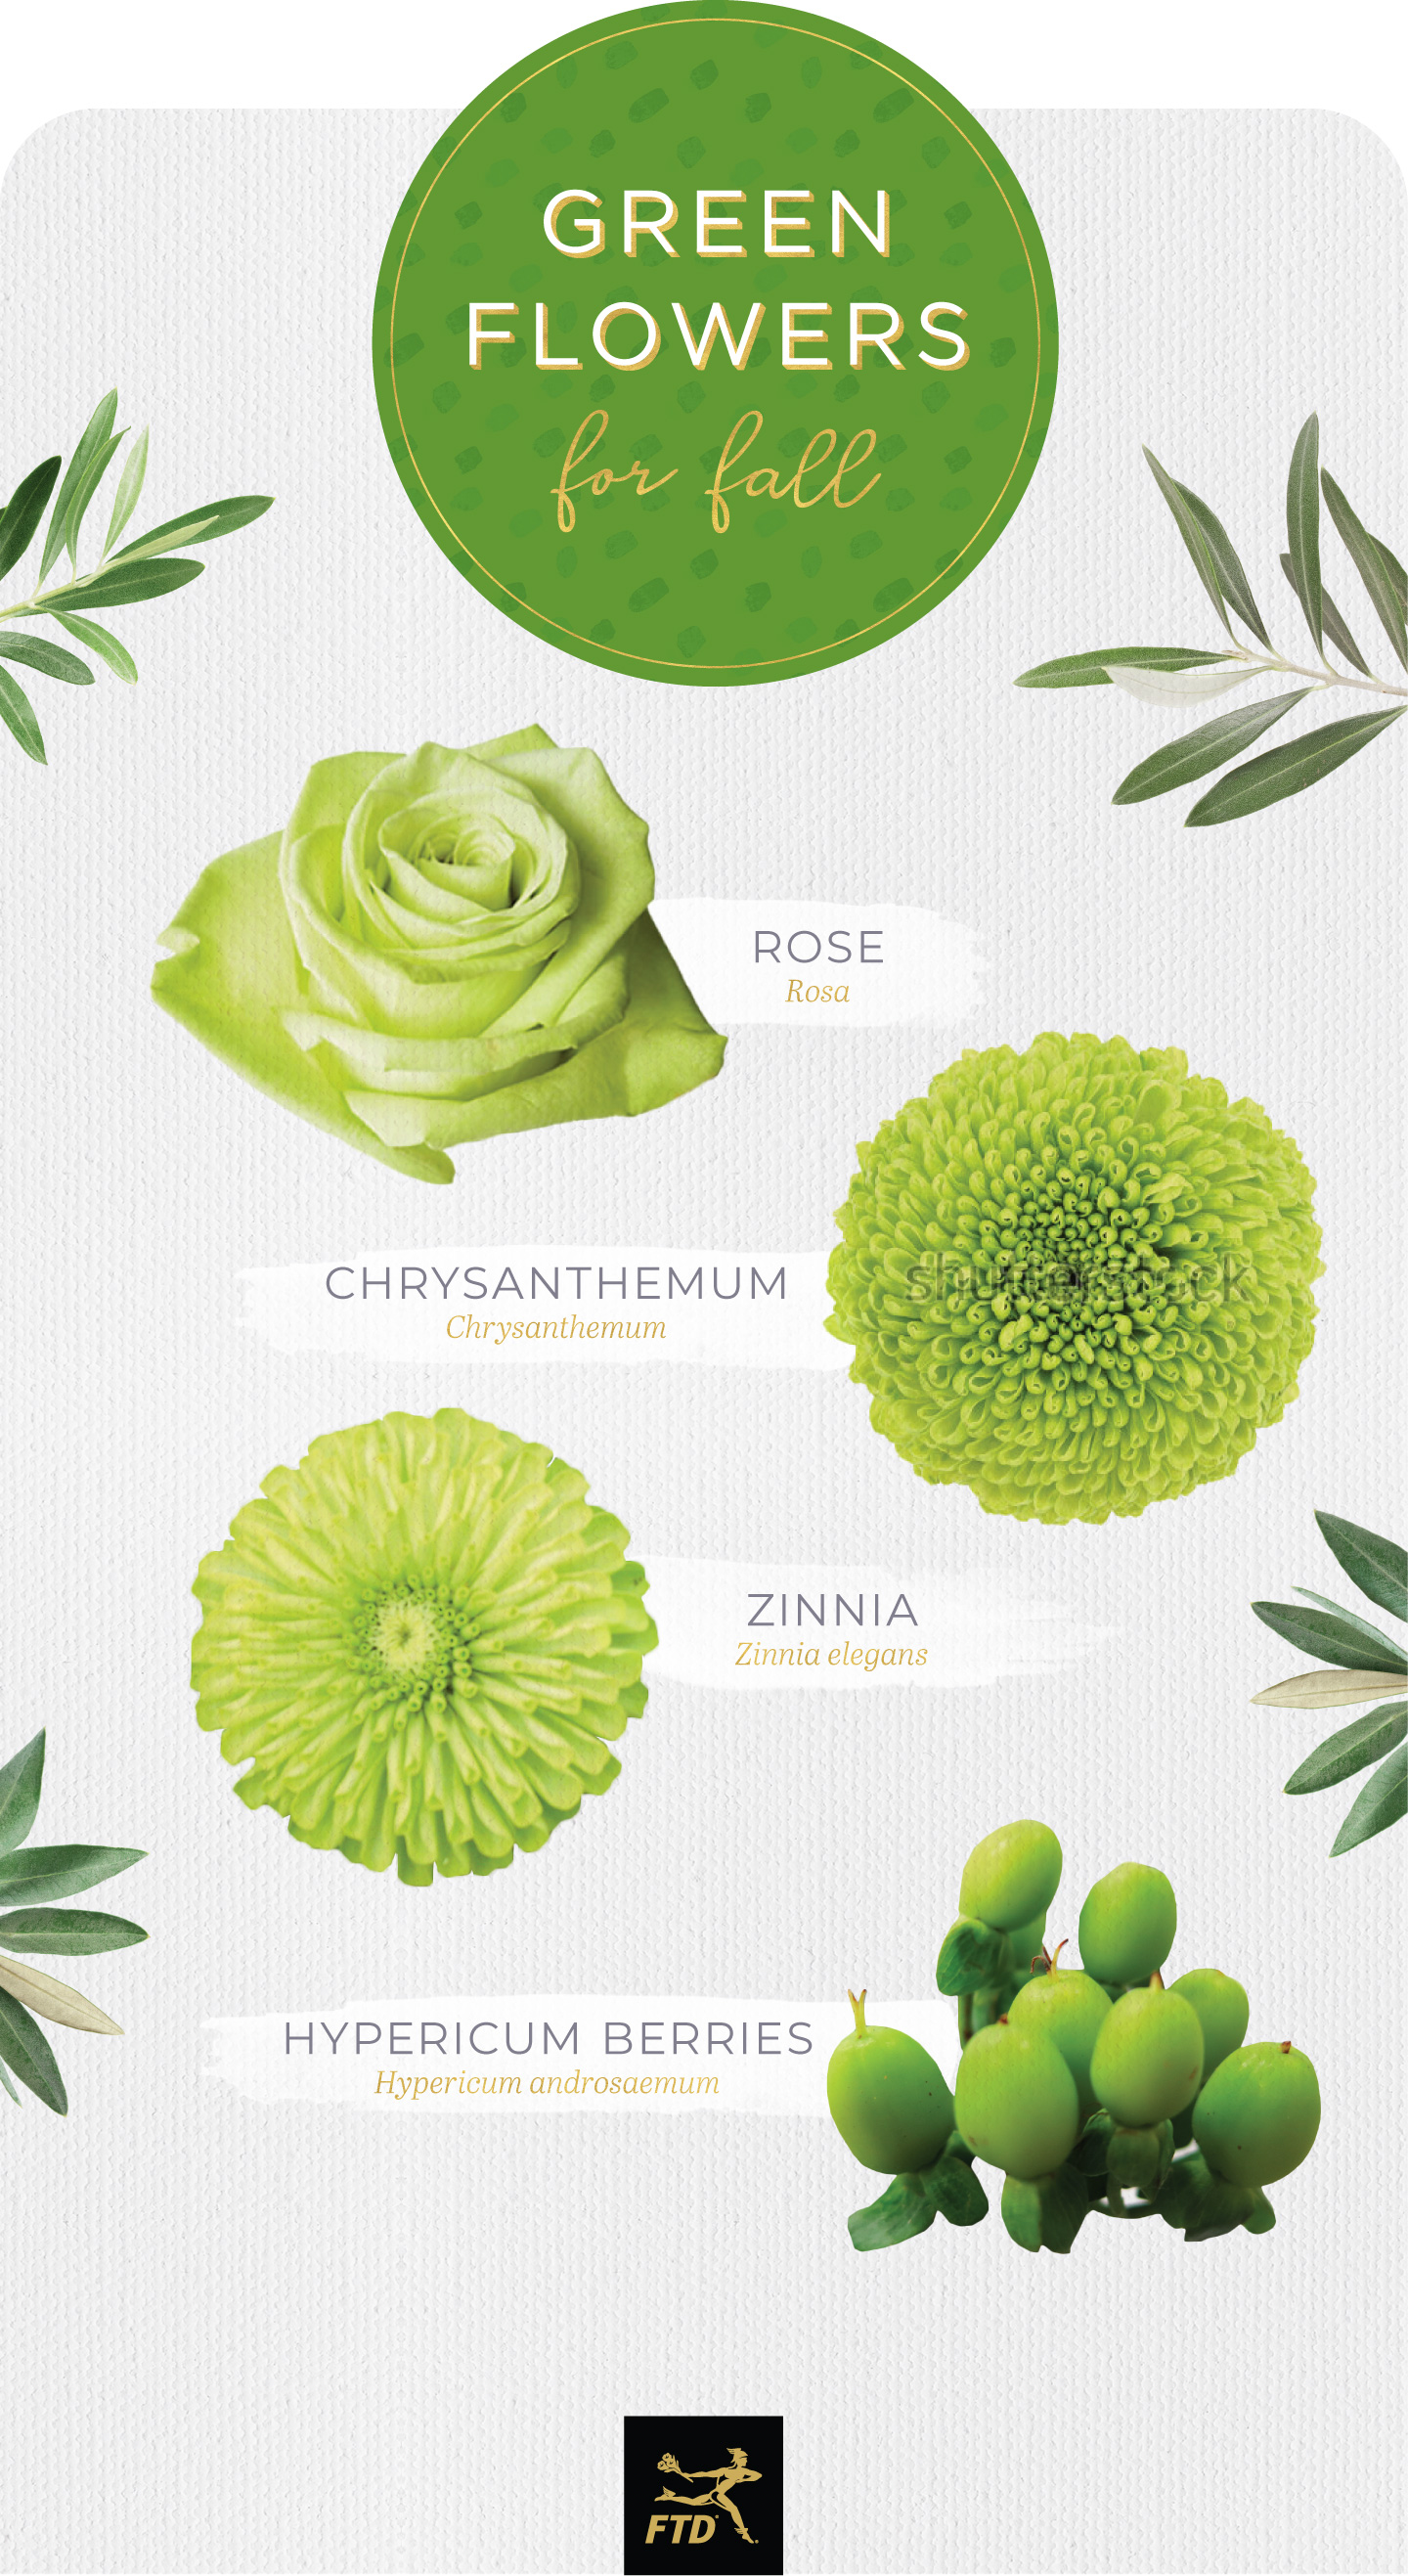 types of green flowers fall